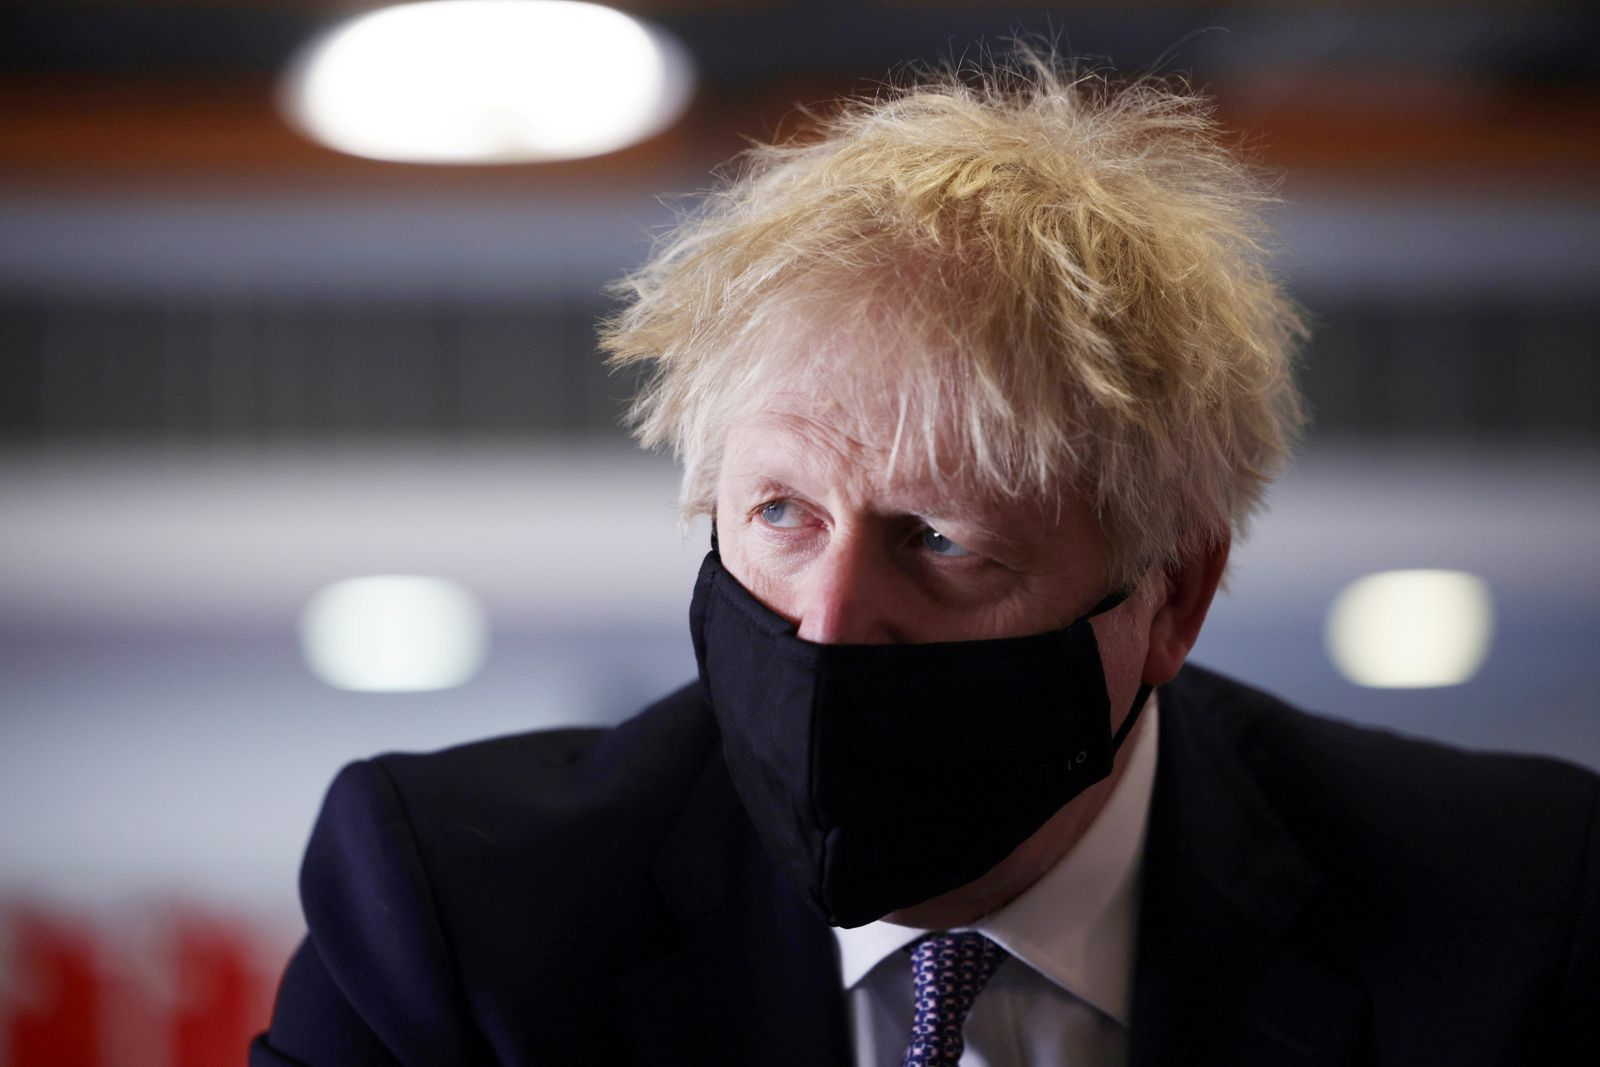 Britain's PM Johnson and Chancellor of the Exchequer Sunak visit a school in London